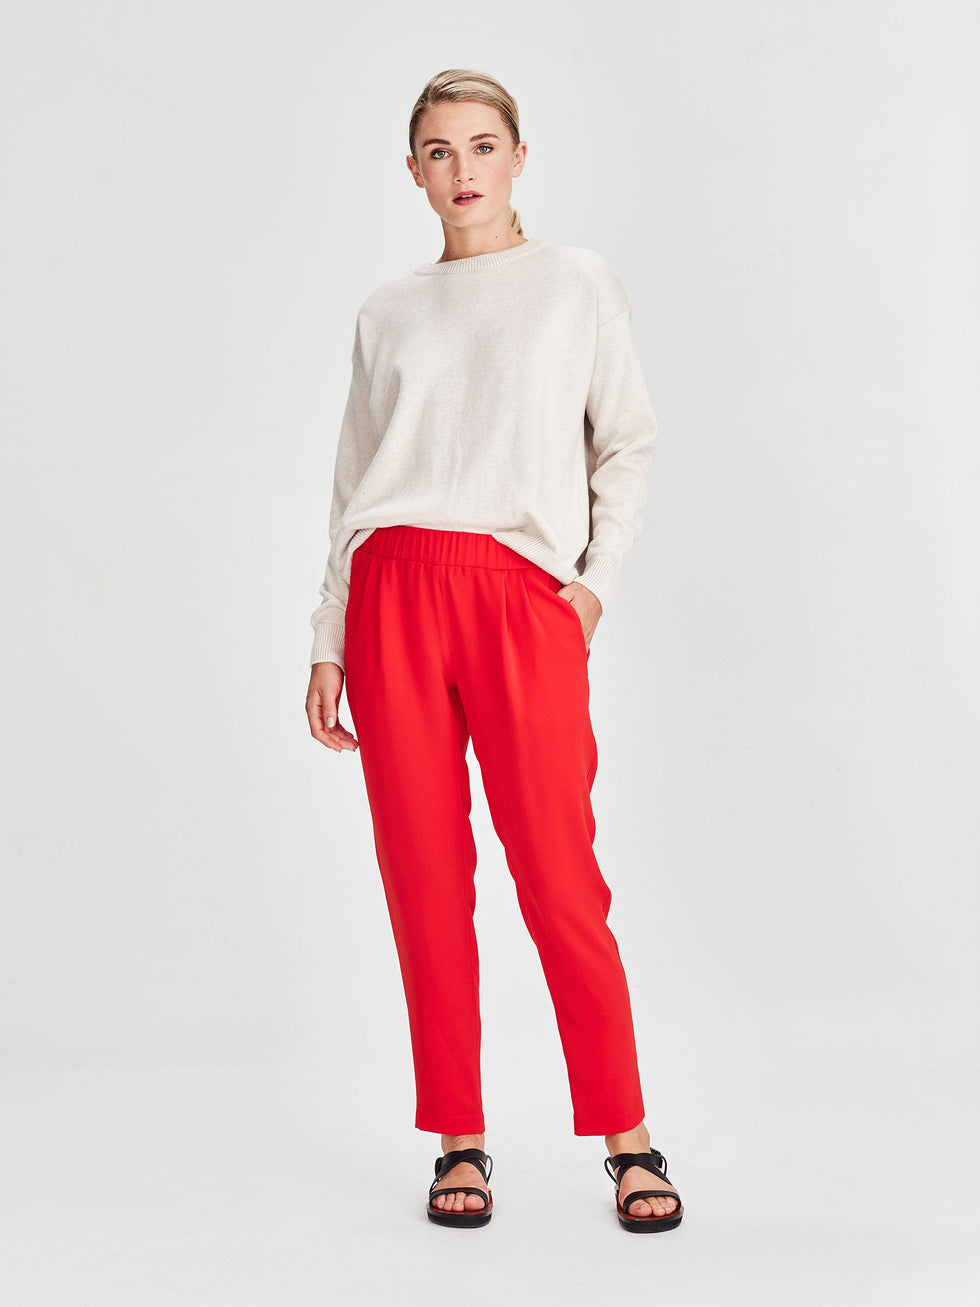 Malfoy Pant (Luxe Coloured Suiting) Cherry